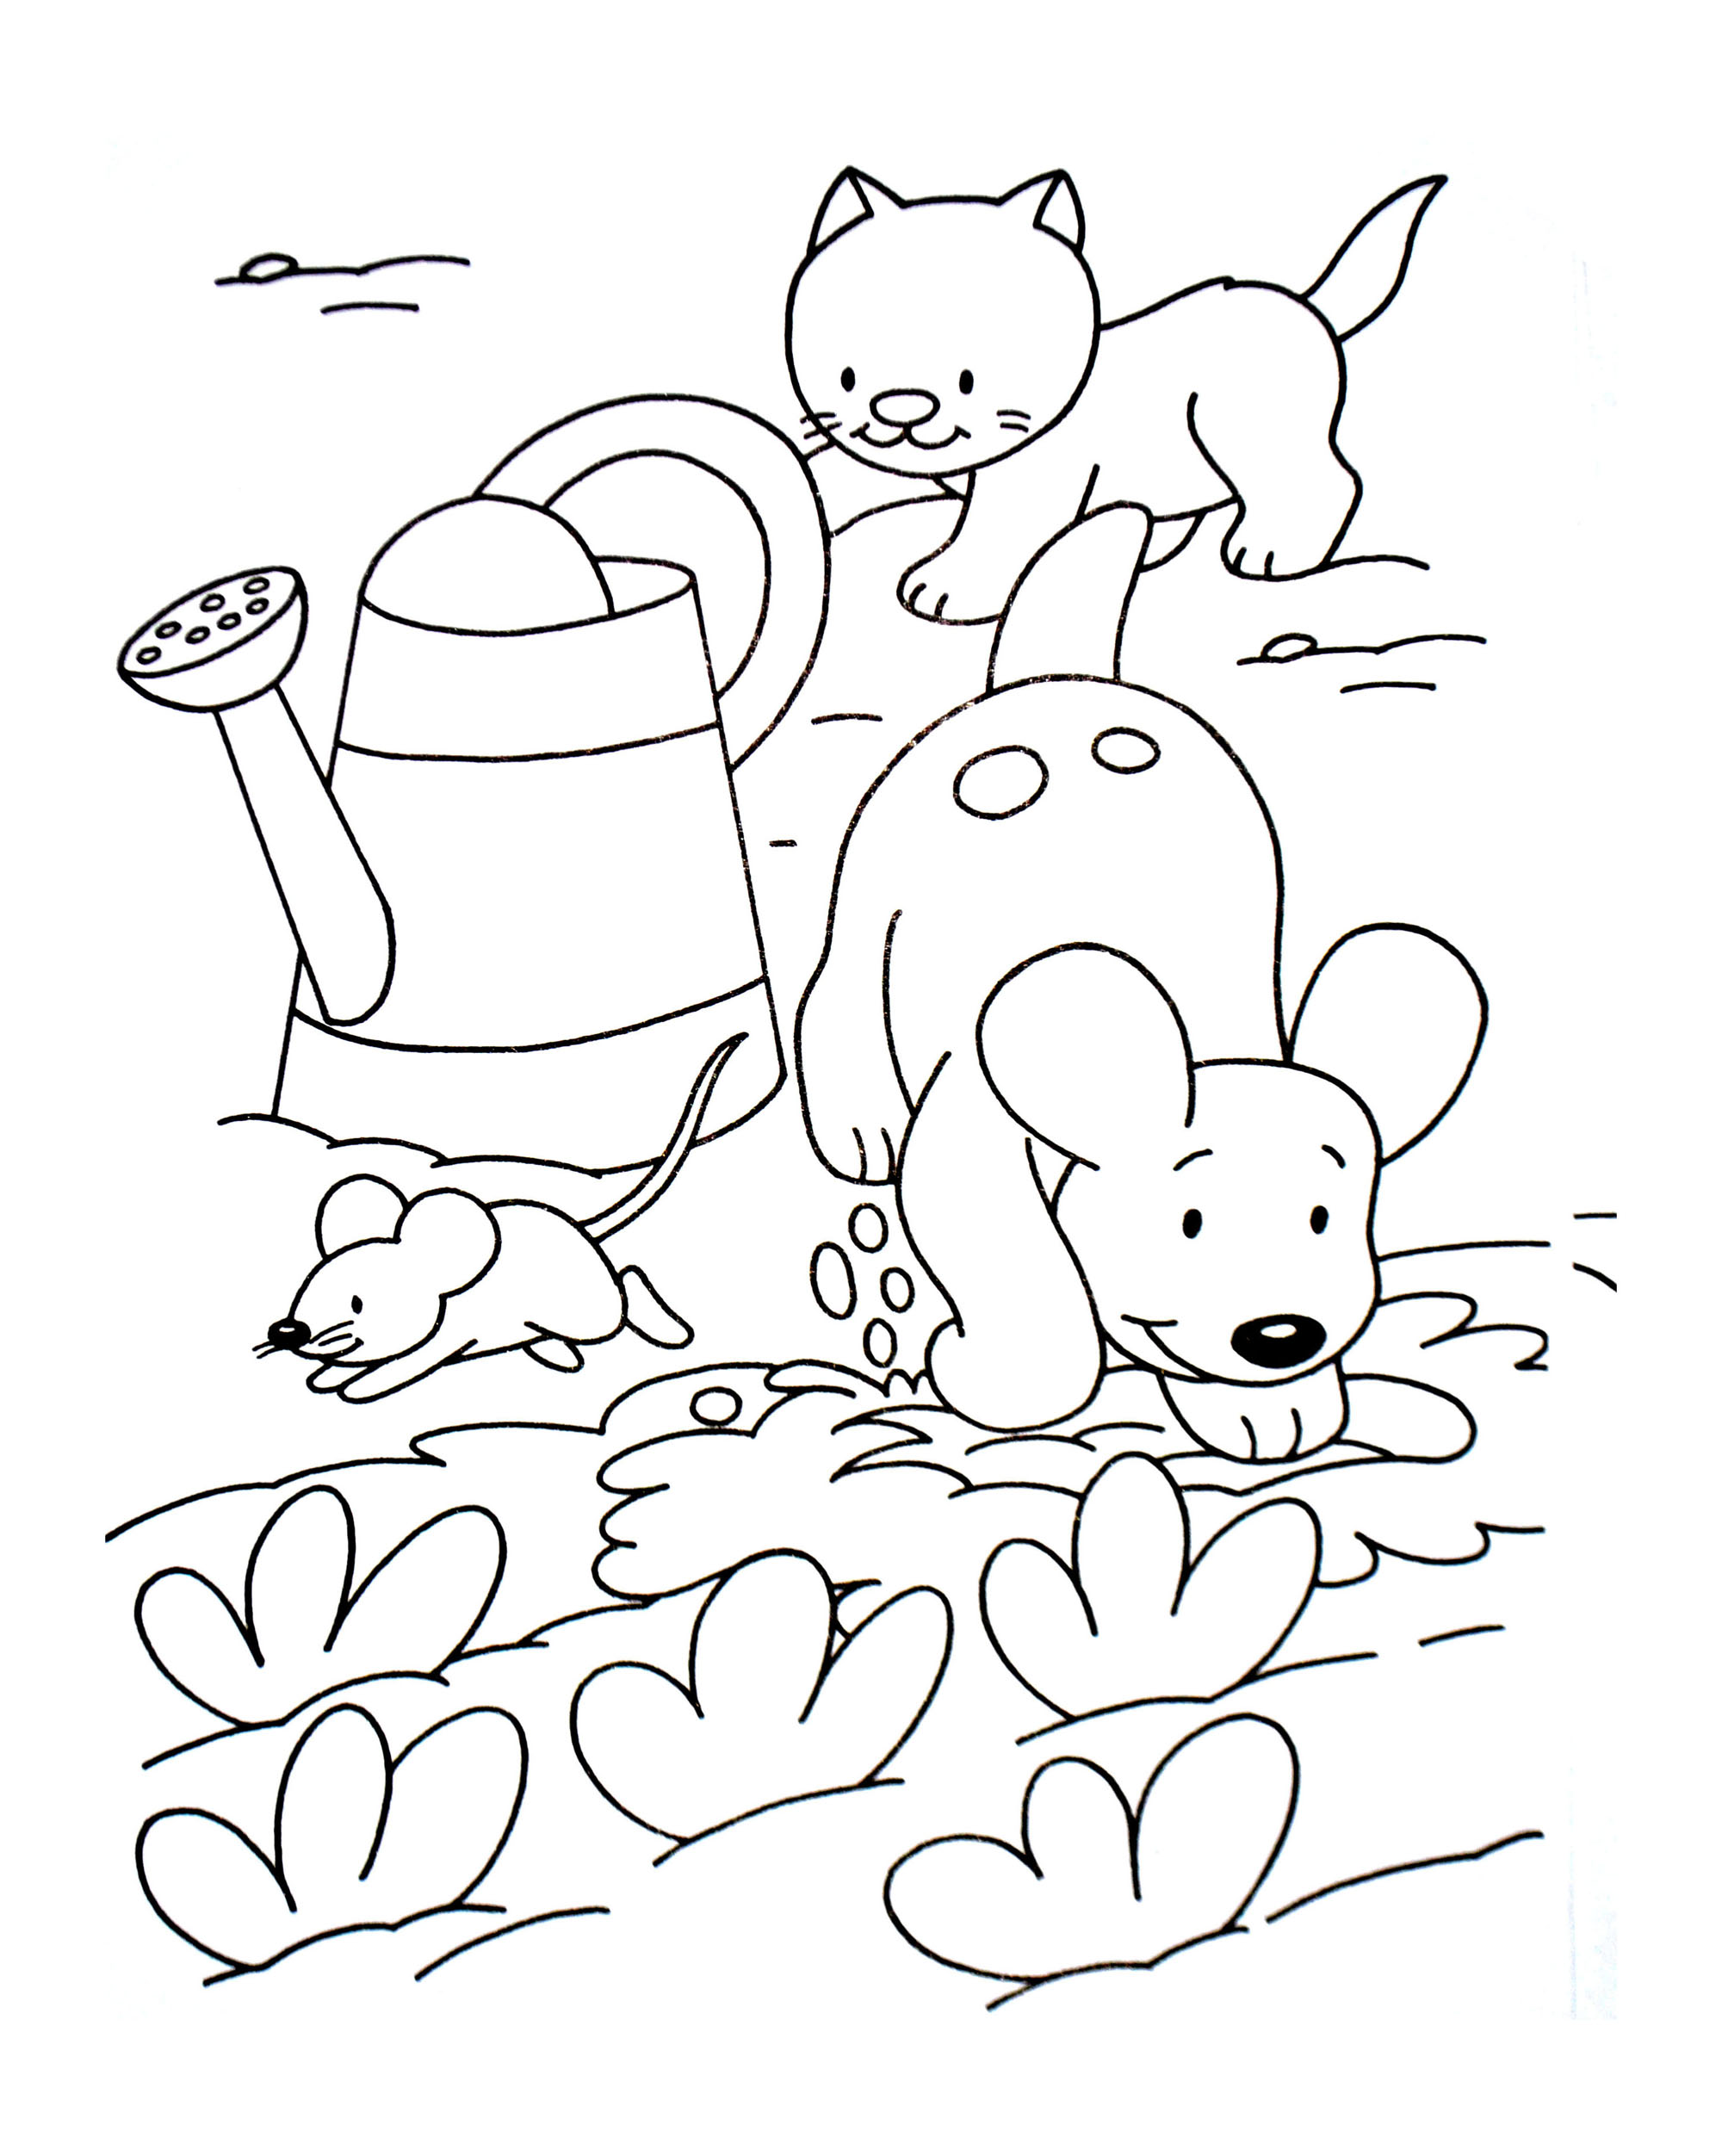 dog coloring pages for adults justcolor